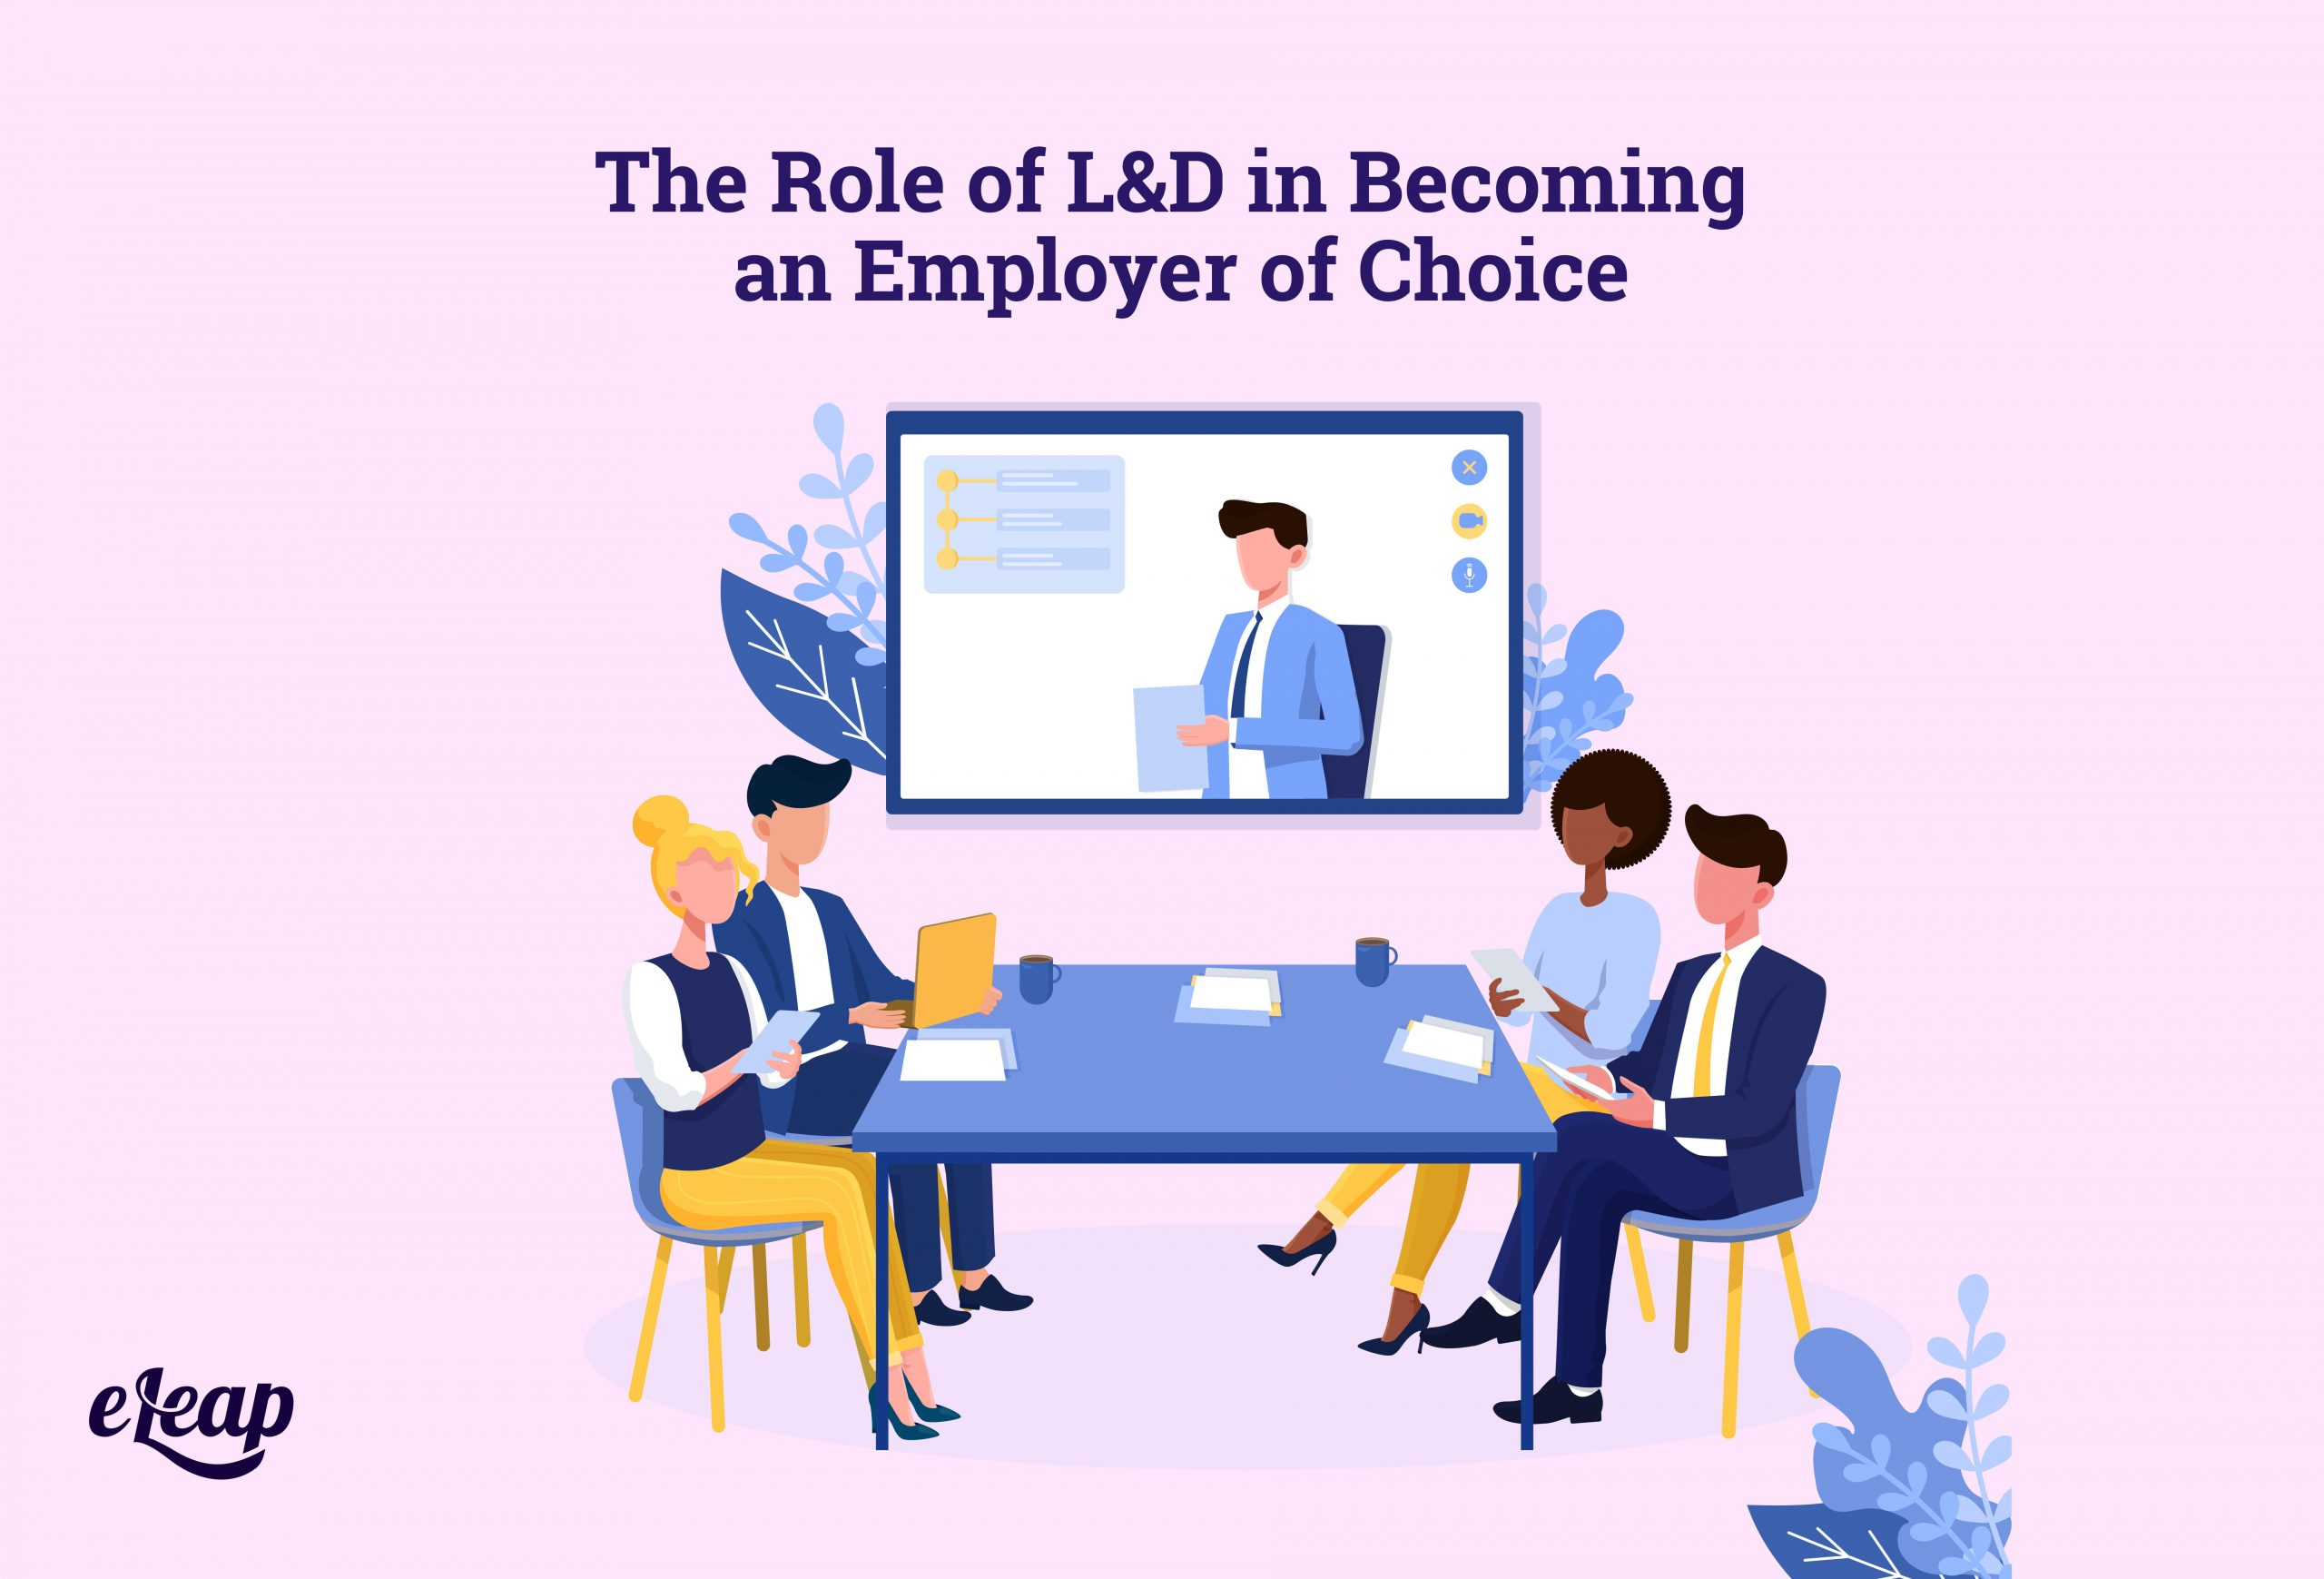 The Role of L&D in Becoming an Employer of Choice